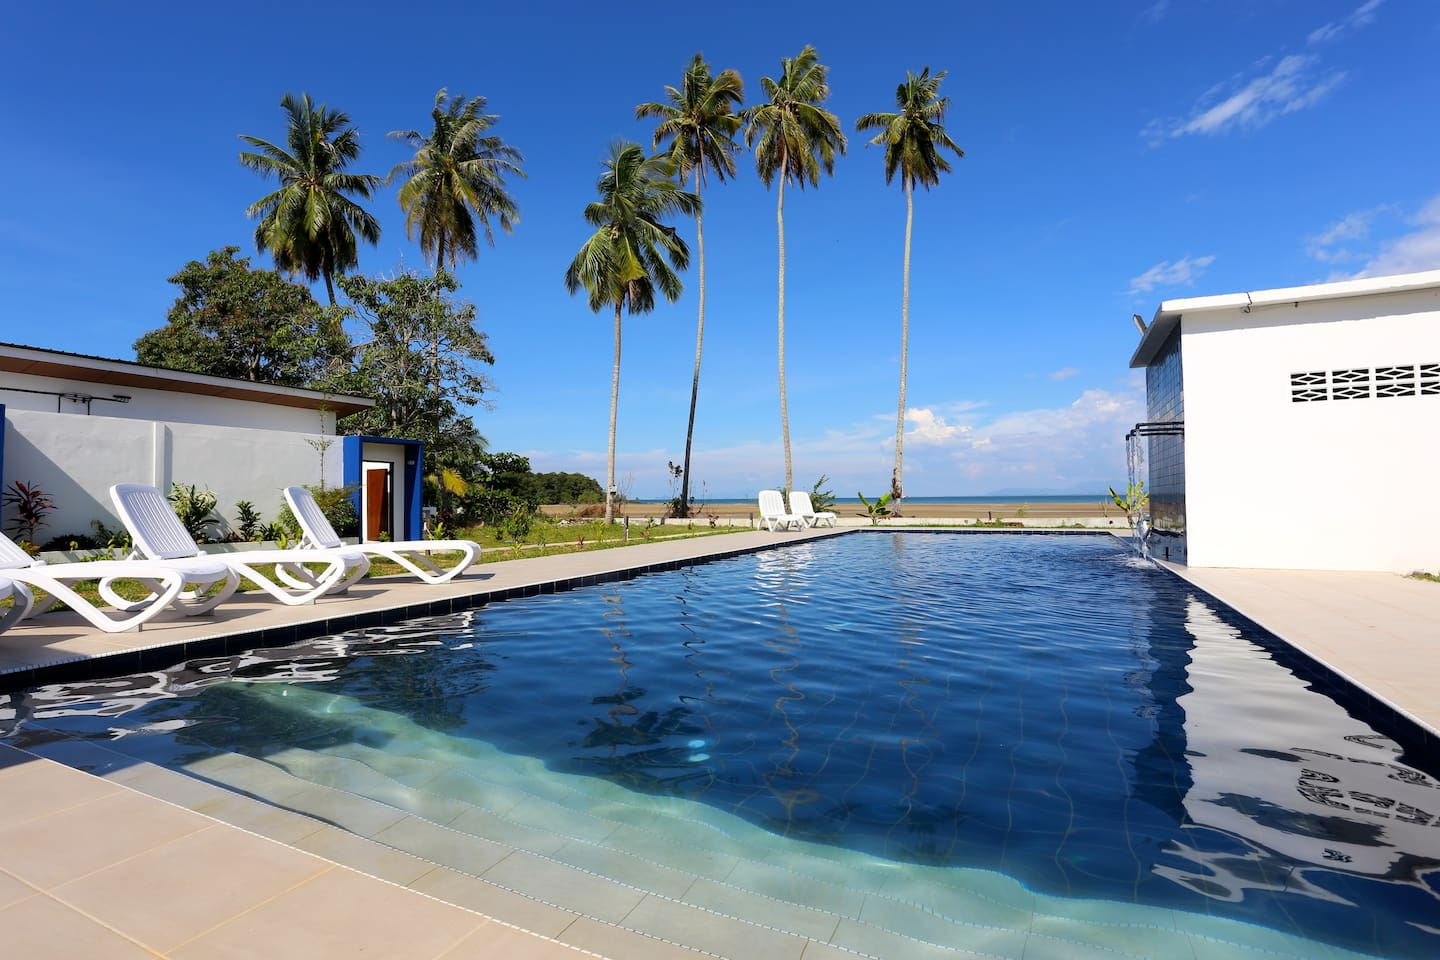 swimming pool overlooking the beach